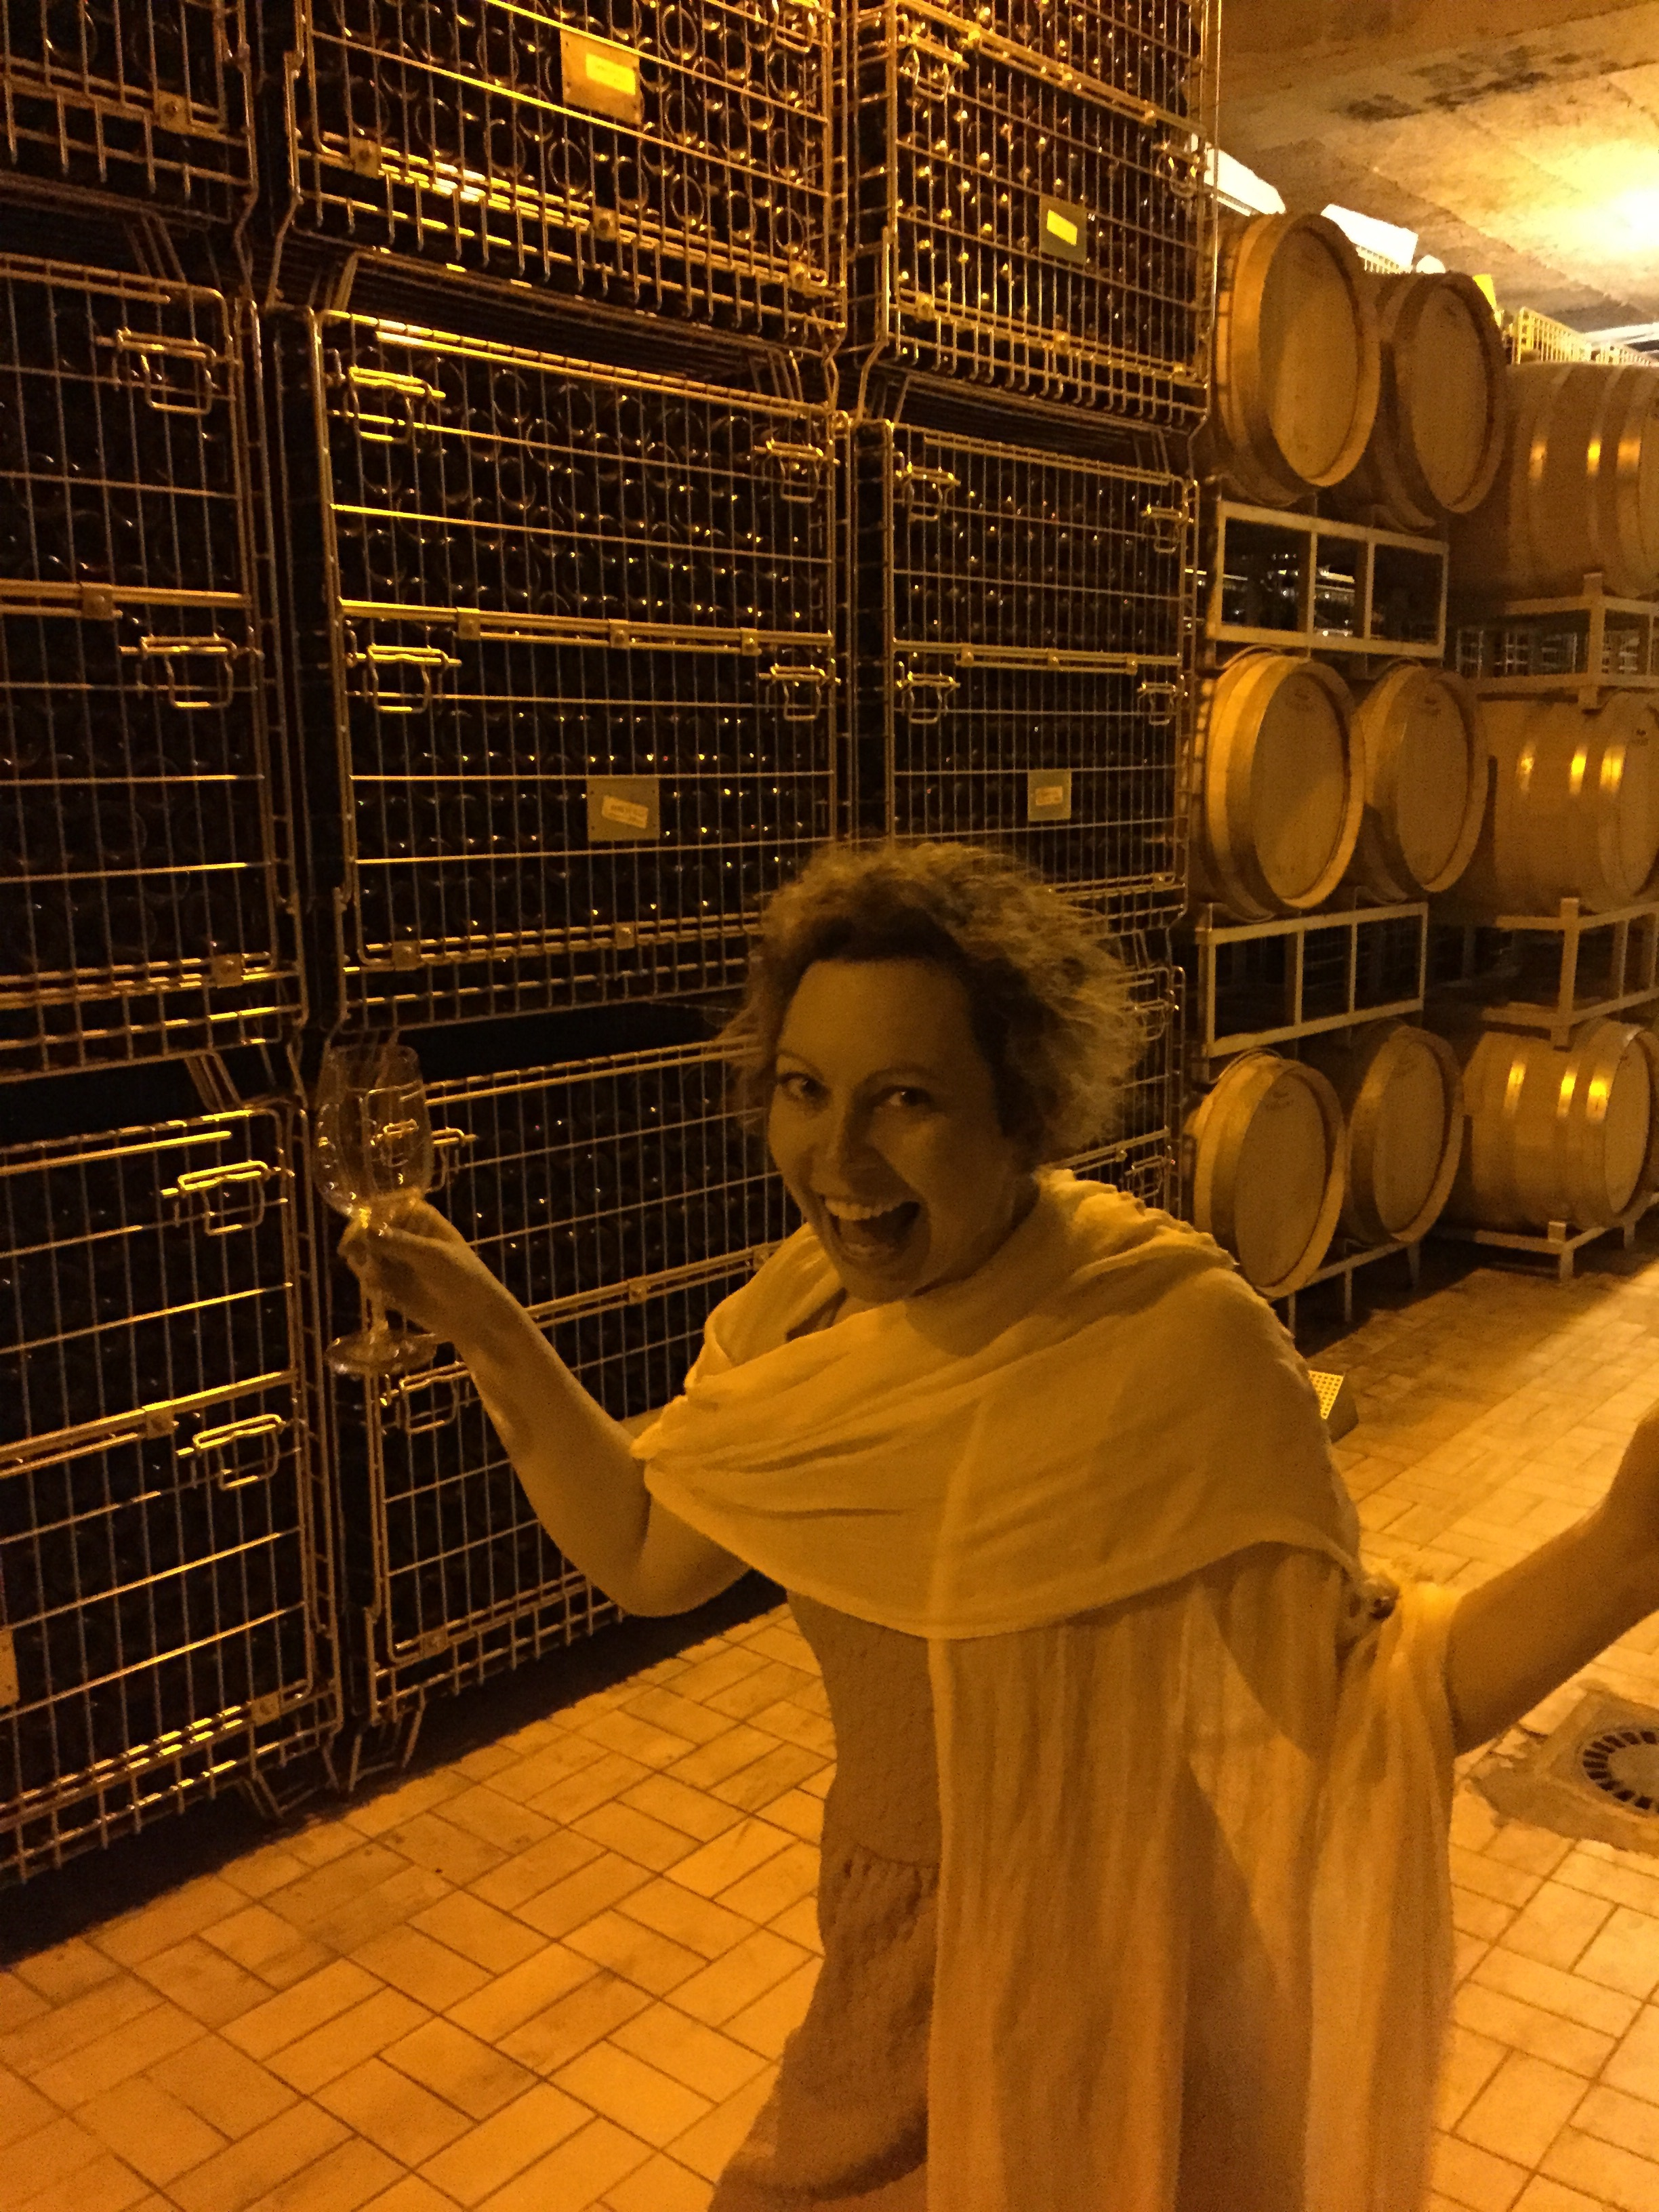 Kristin was excited to be in the cool, dark cellar after the heat outside.